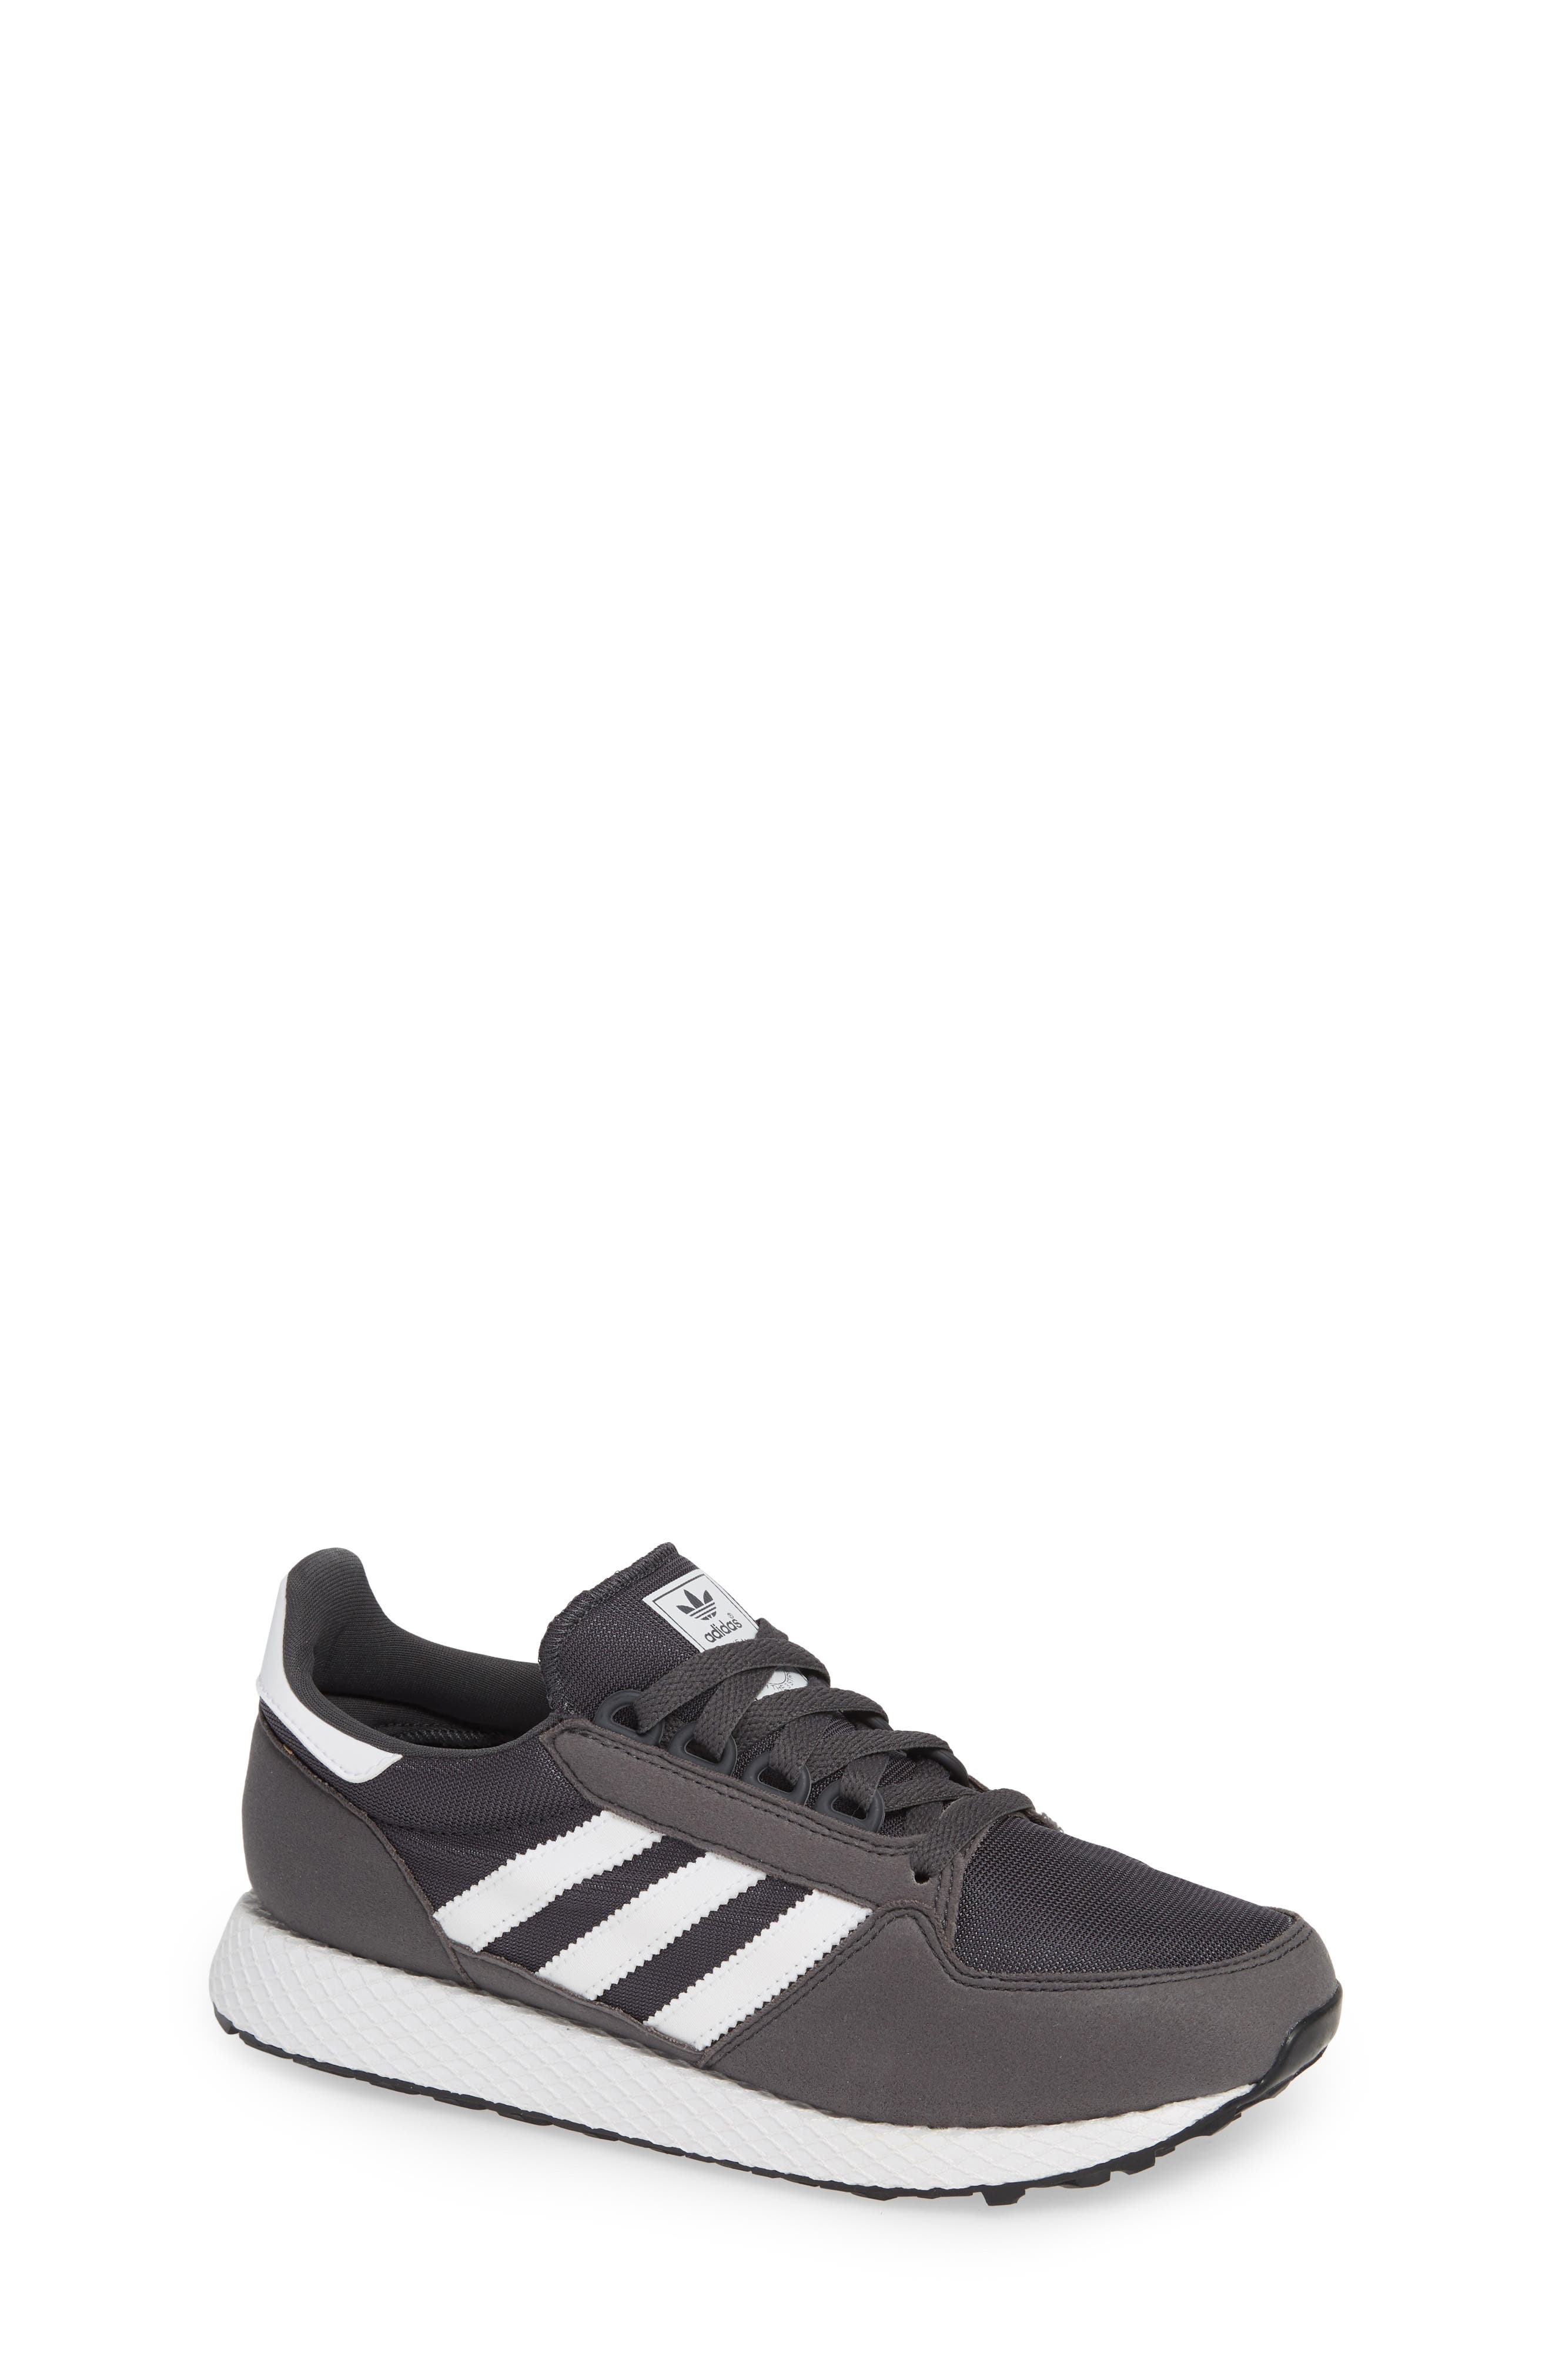 ADIDAS Forest Grove Sneaker, Main, color, GREY SIX/ WHITE/ GREY SIX